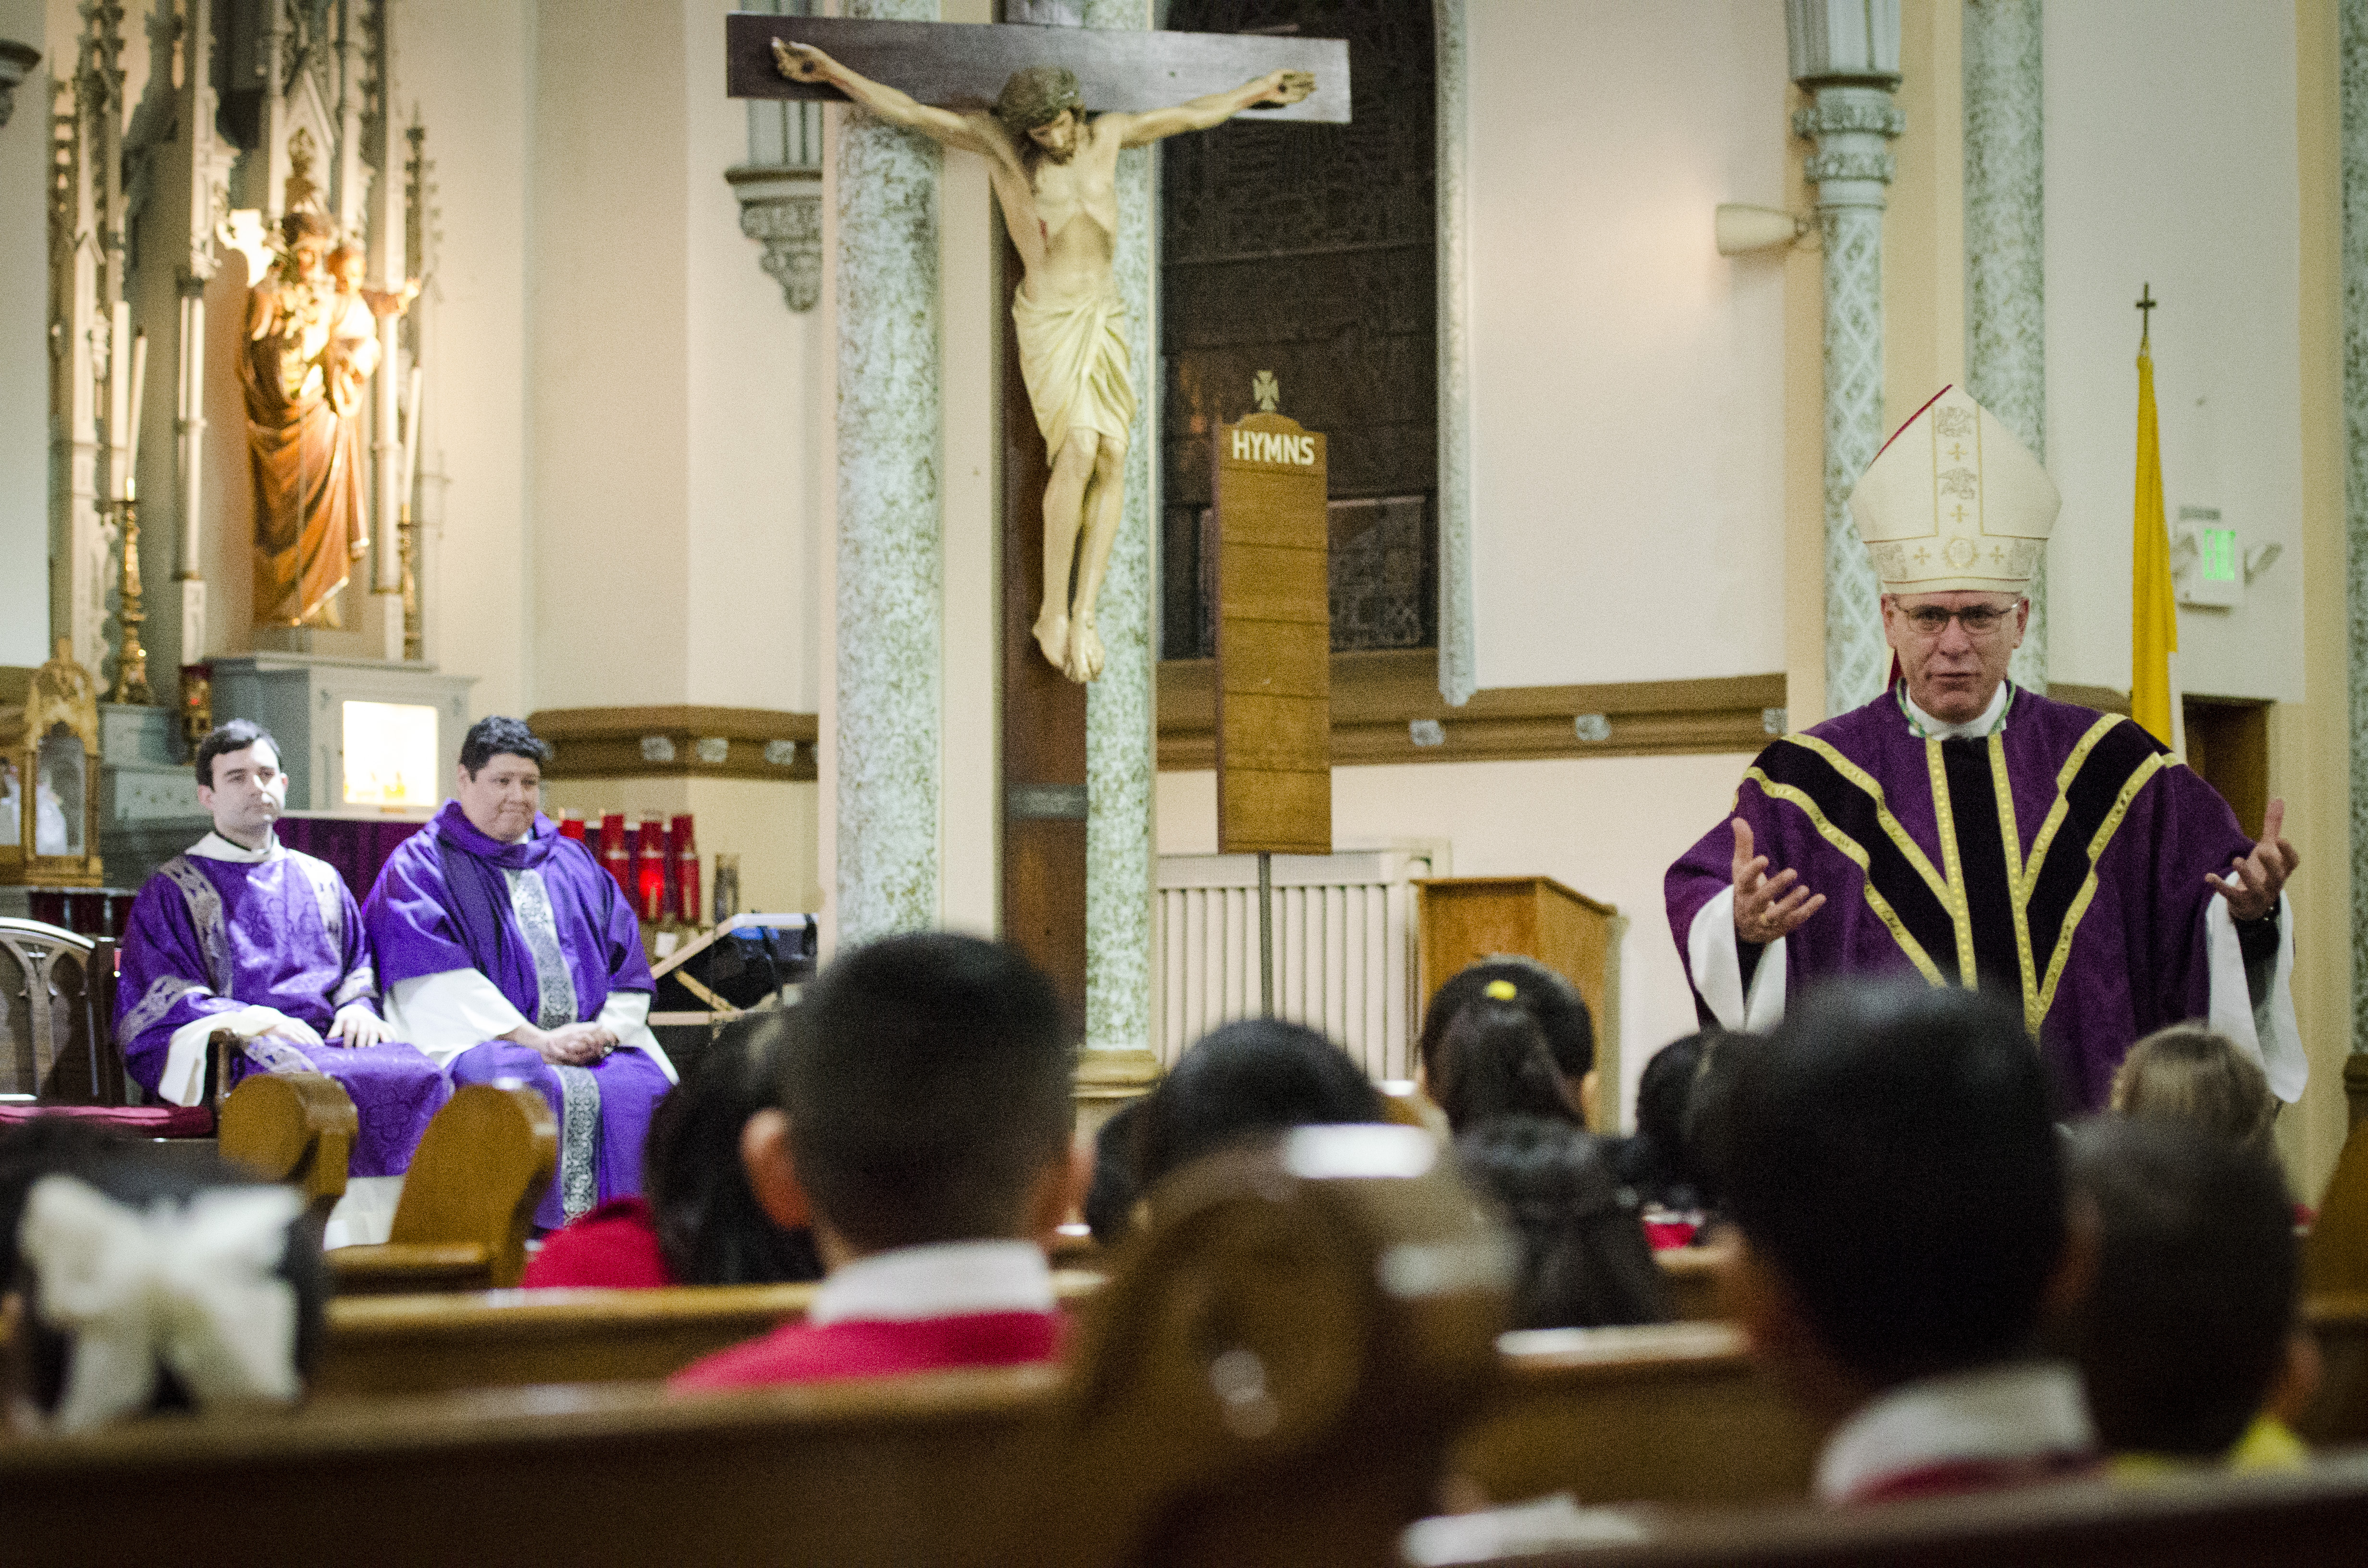 St adalbert school welcomes bishop rhoades todays catholic at the end of mass principal andrew currier had a presentation for the bishop he said there is no greater gift than the mass but we have a few mementos kristyandbryce Image collections